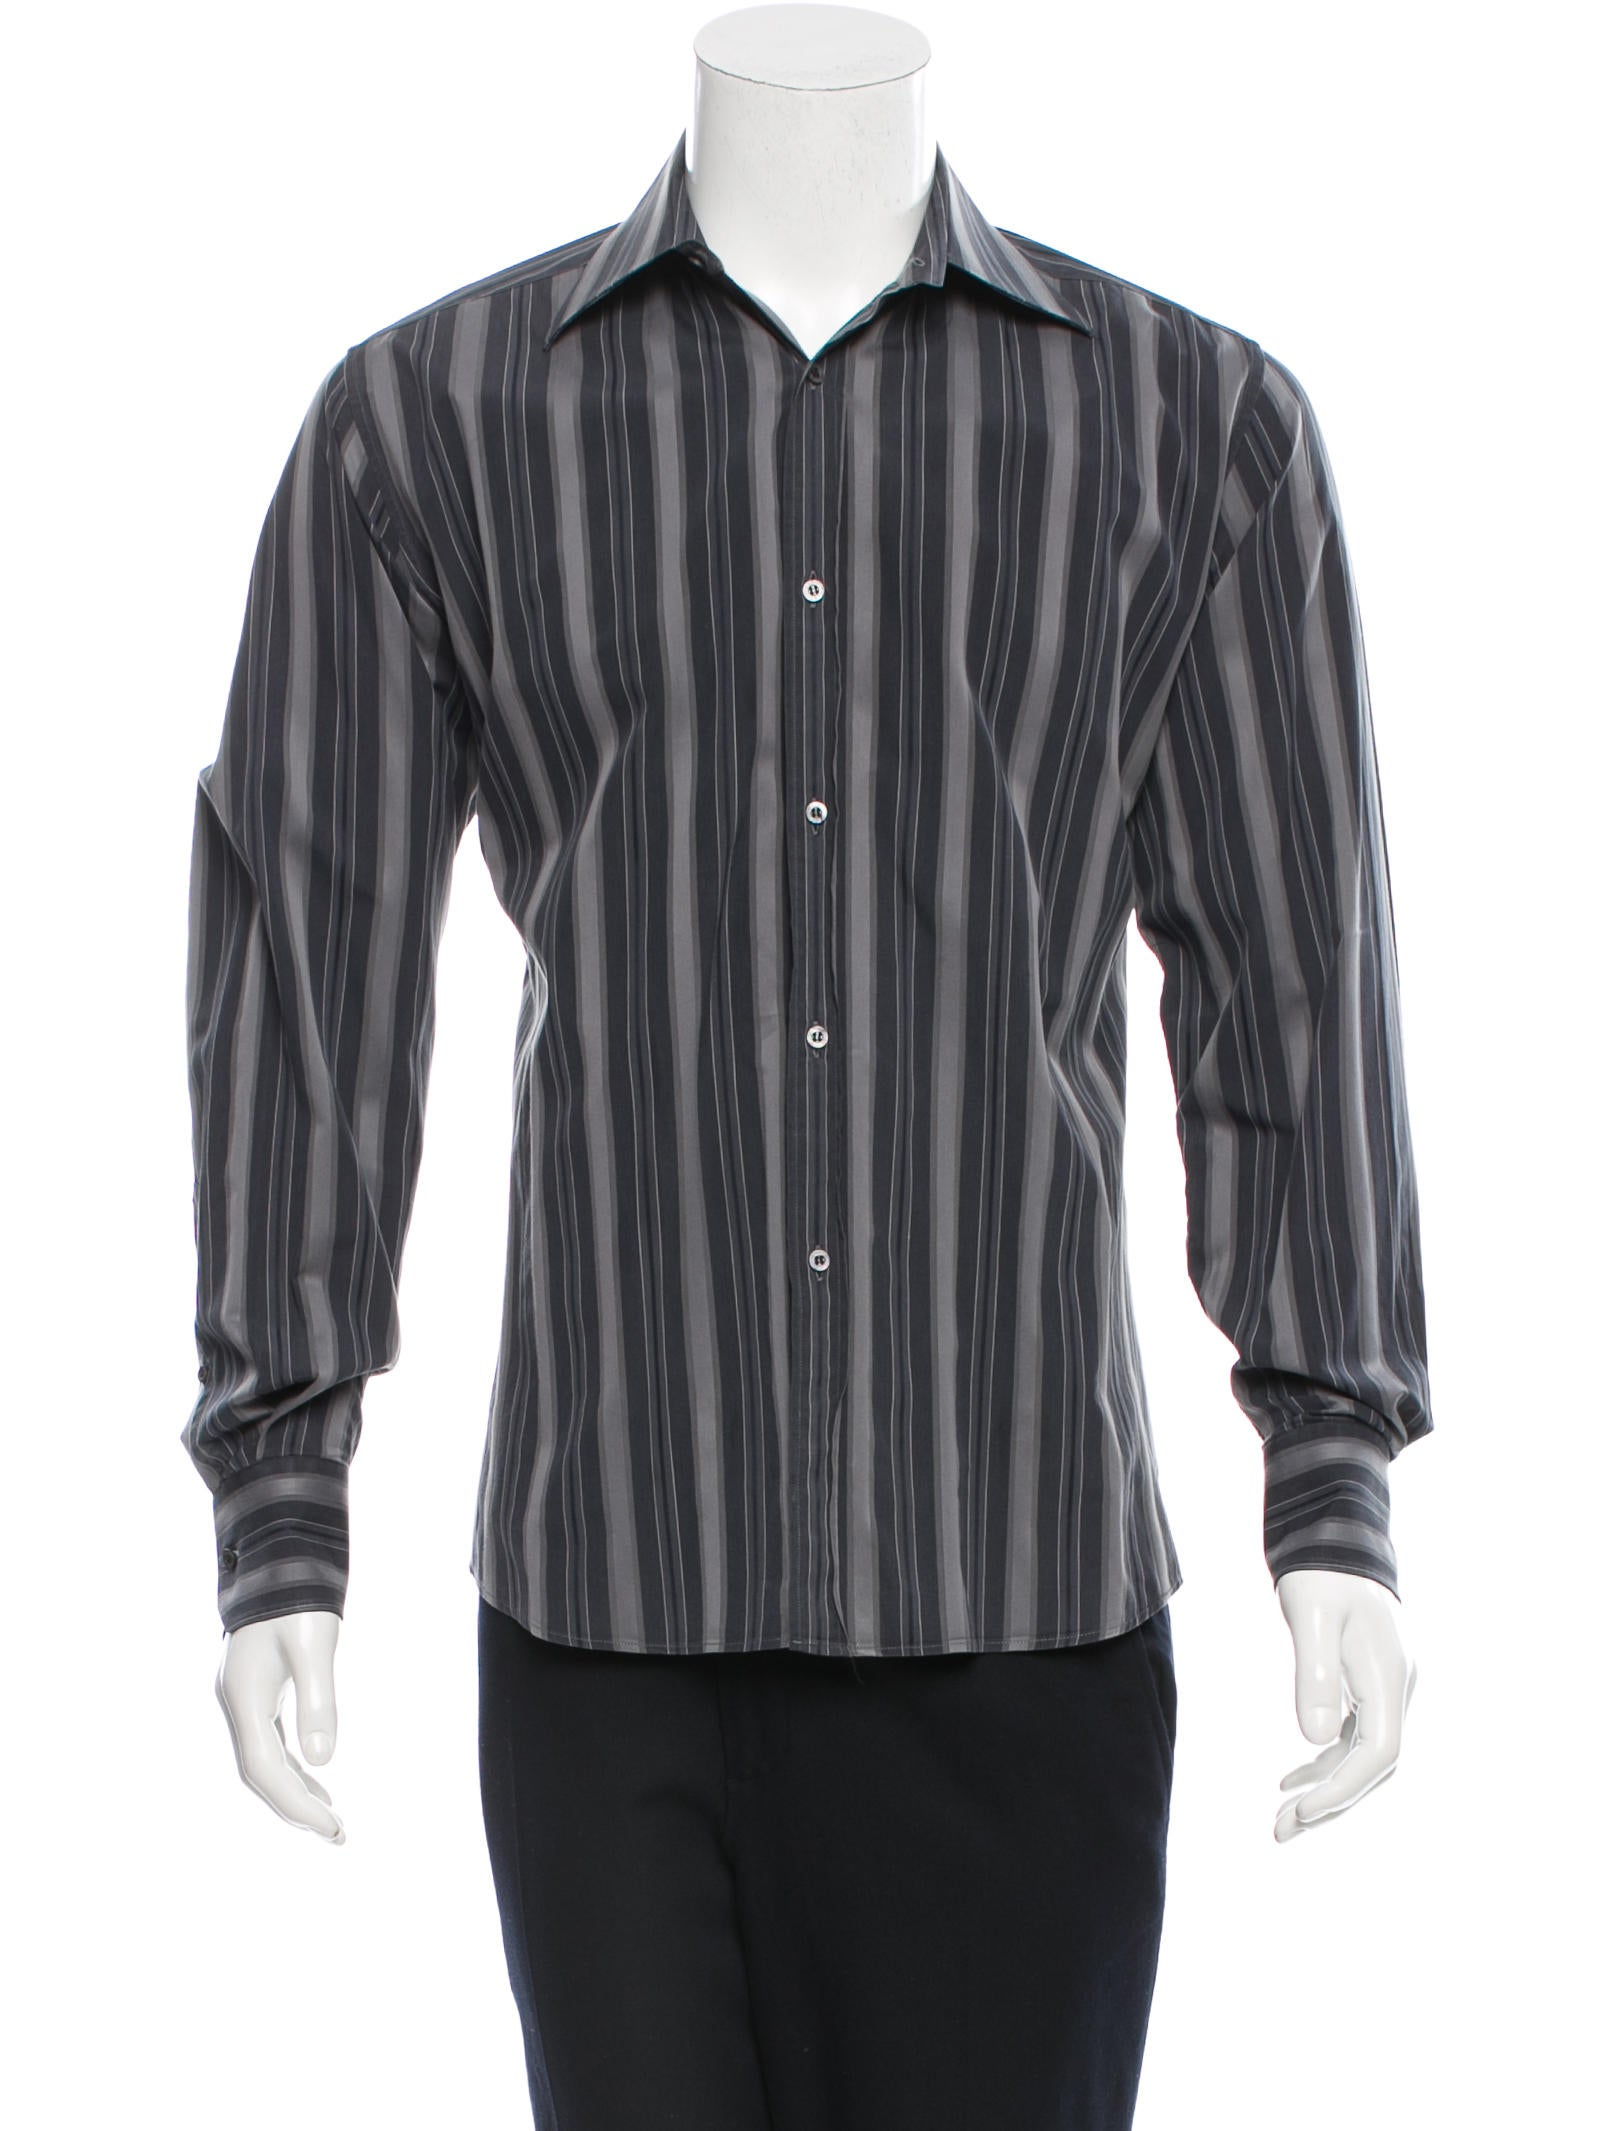 Gucci striped button up shirt clothing guc113188 the for Striped button up shirt mens